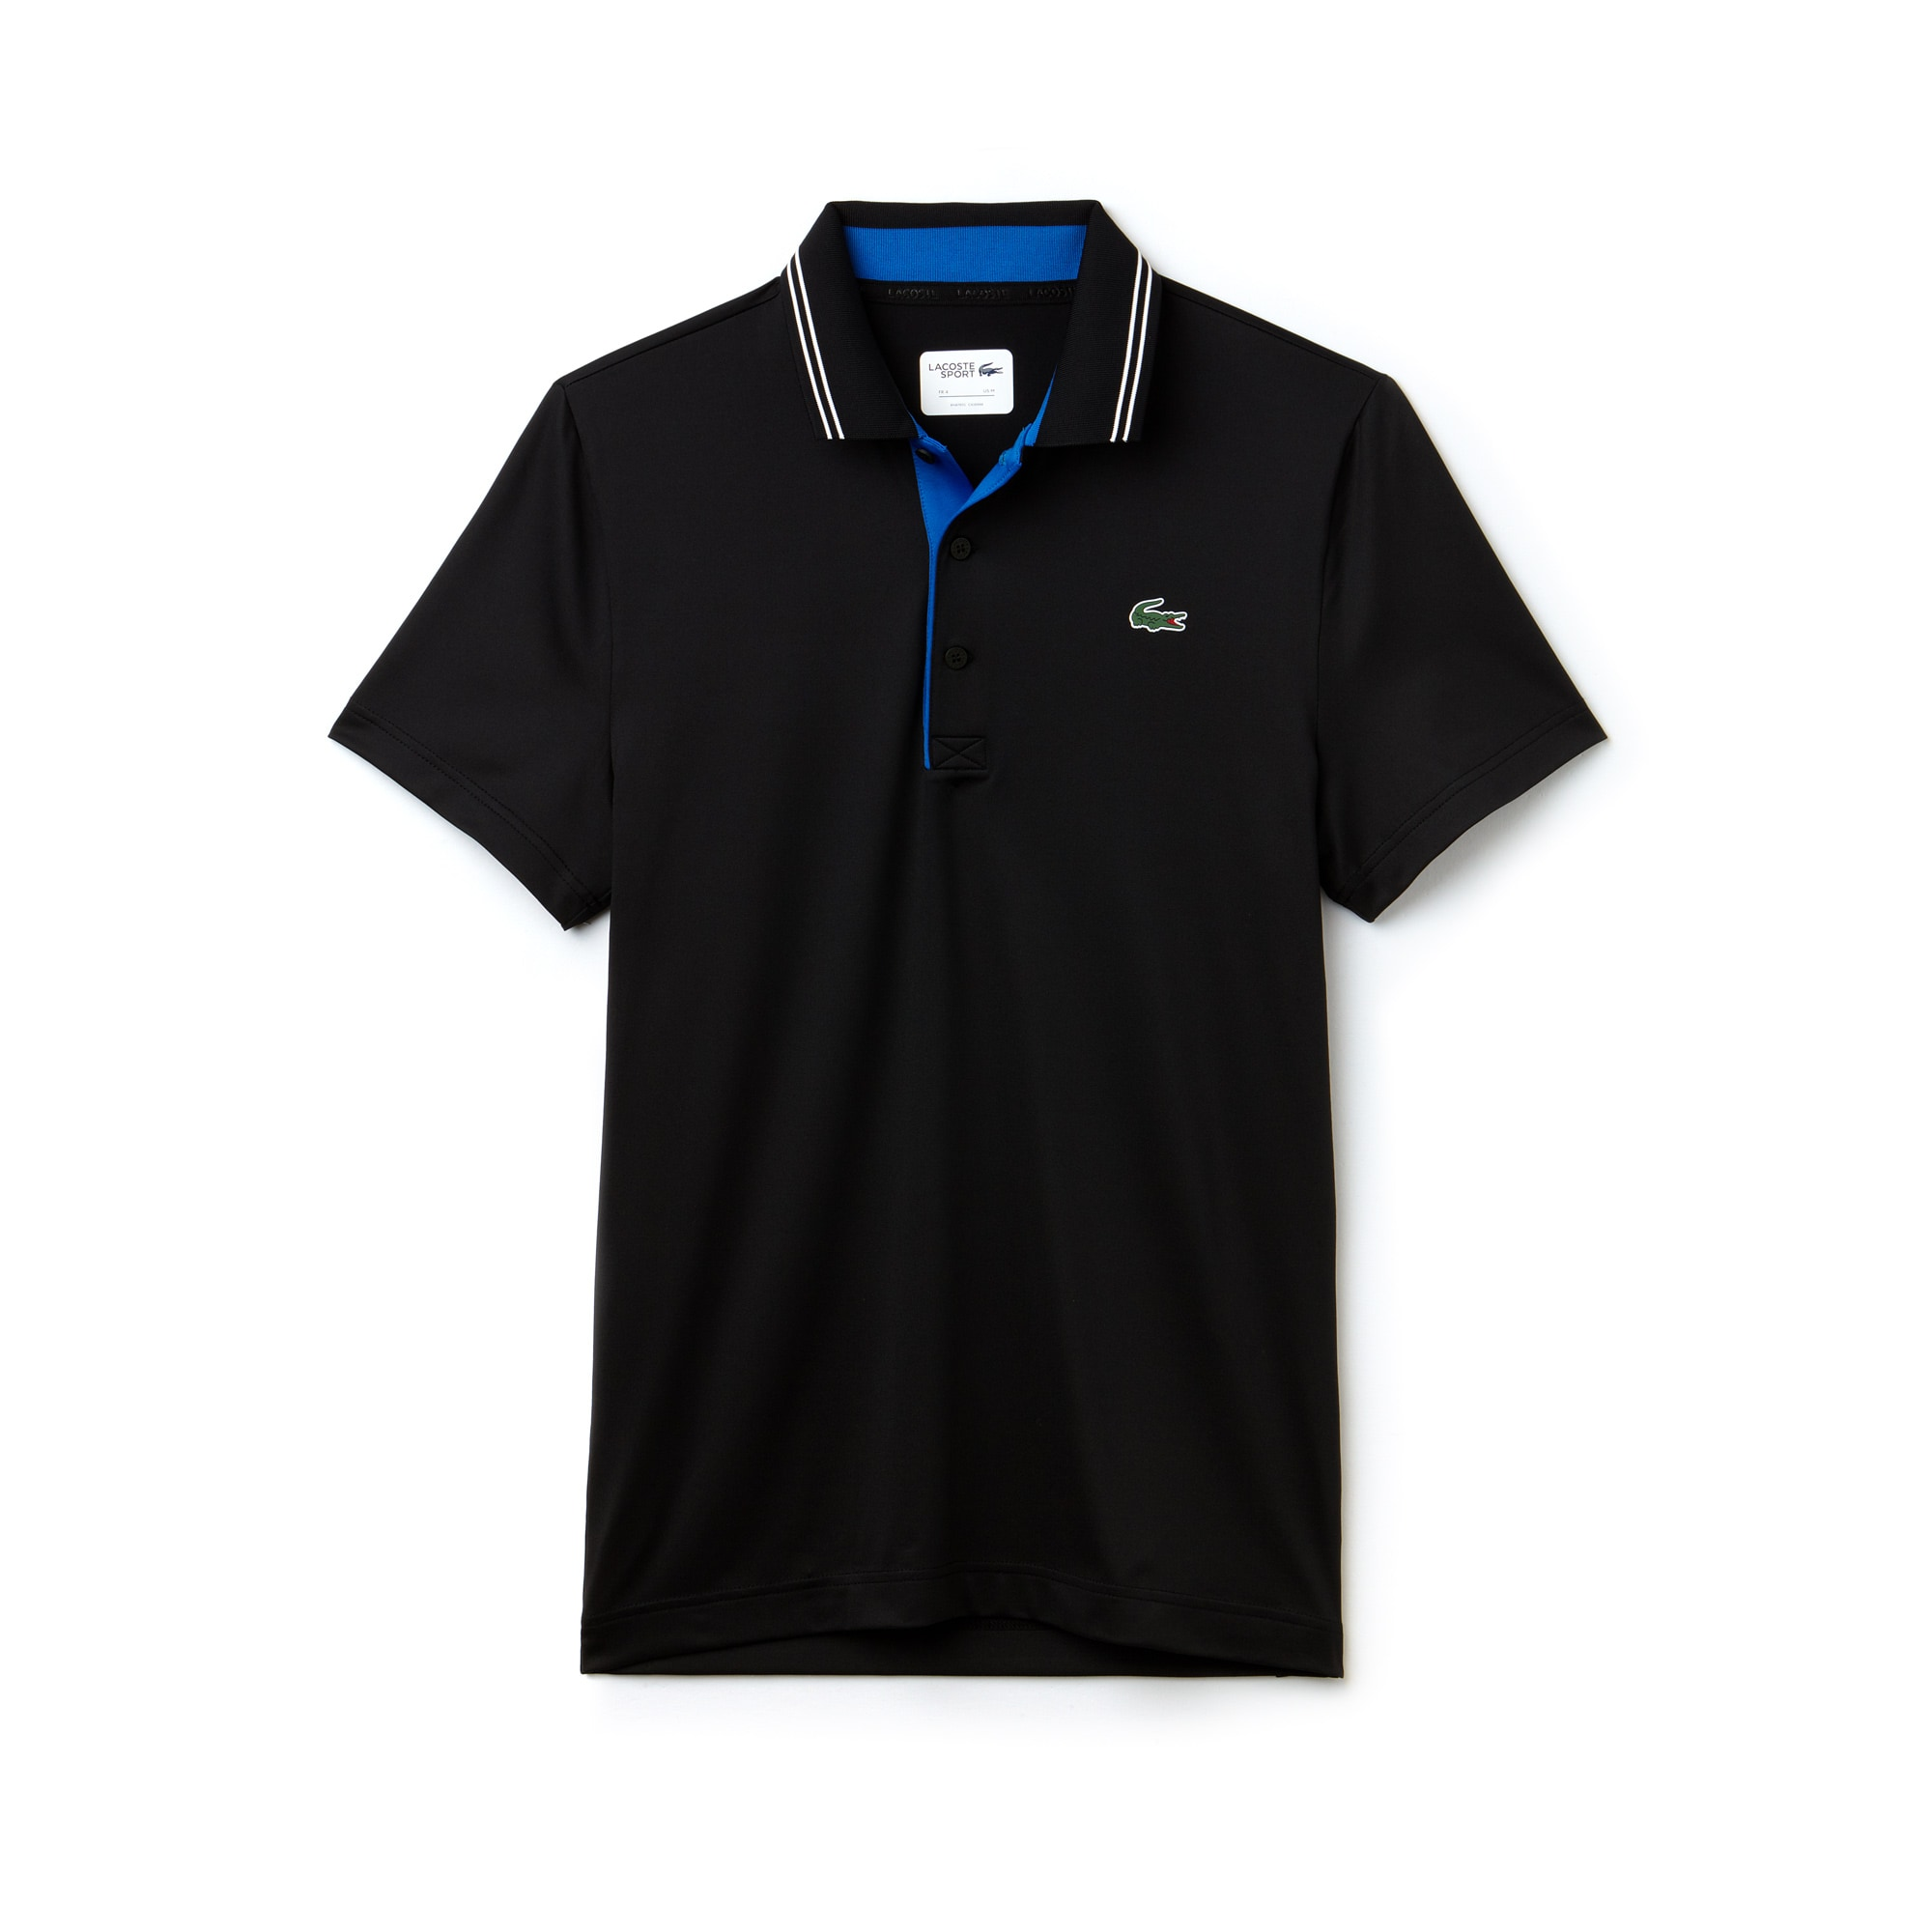 라코스테 스포츠 반팔 카라티 Lacoste Mens SPORT Lettering Stretch Technical Jersey Golf Polo Shirt,black/royal blue-white